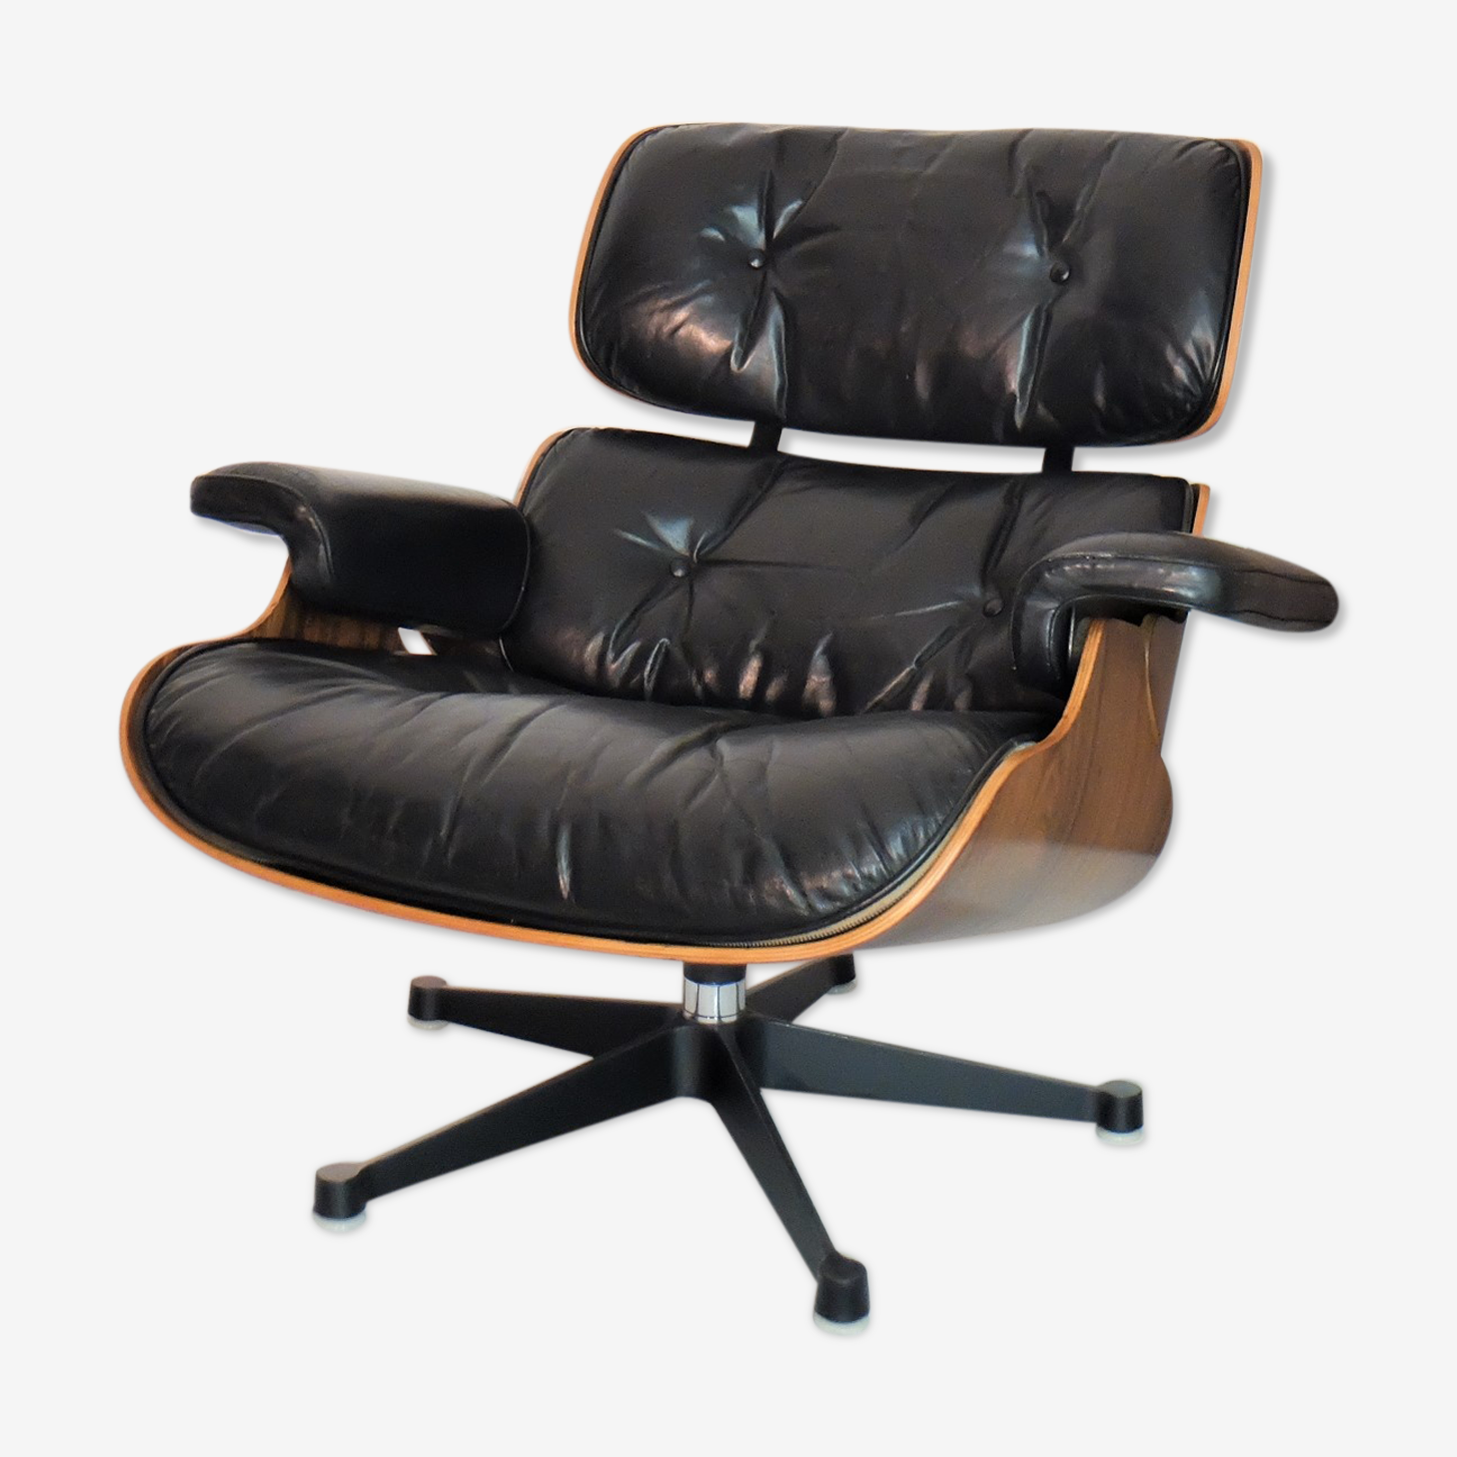 Lounge chair Eames rosewood, 1970 international furniture